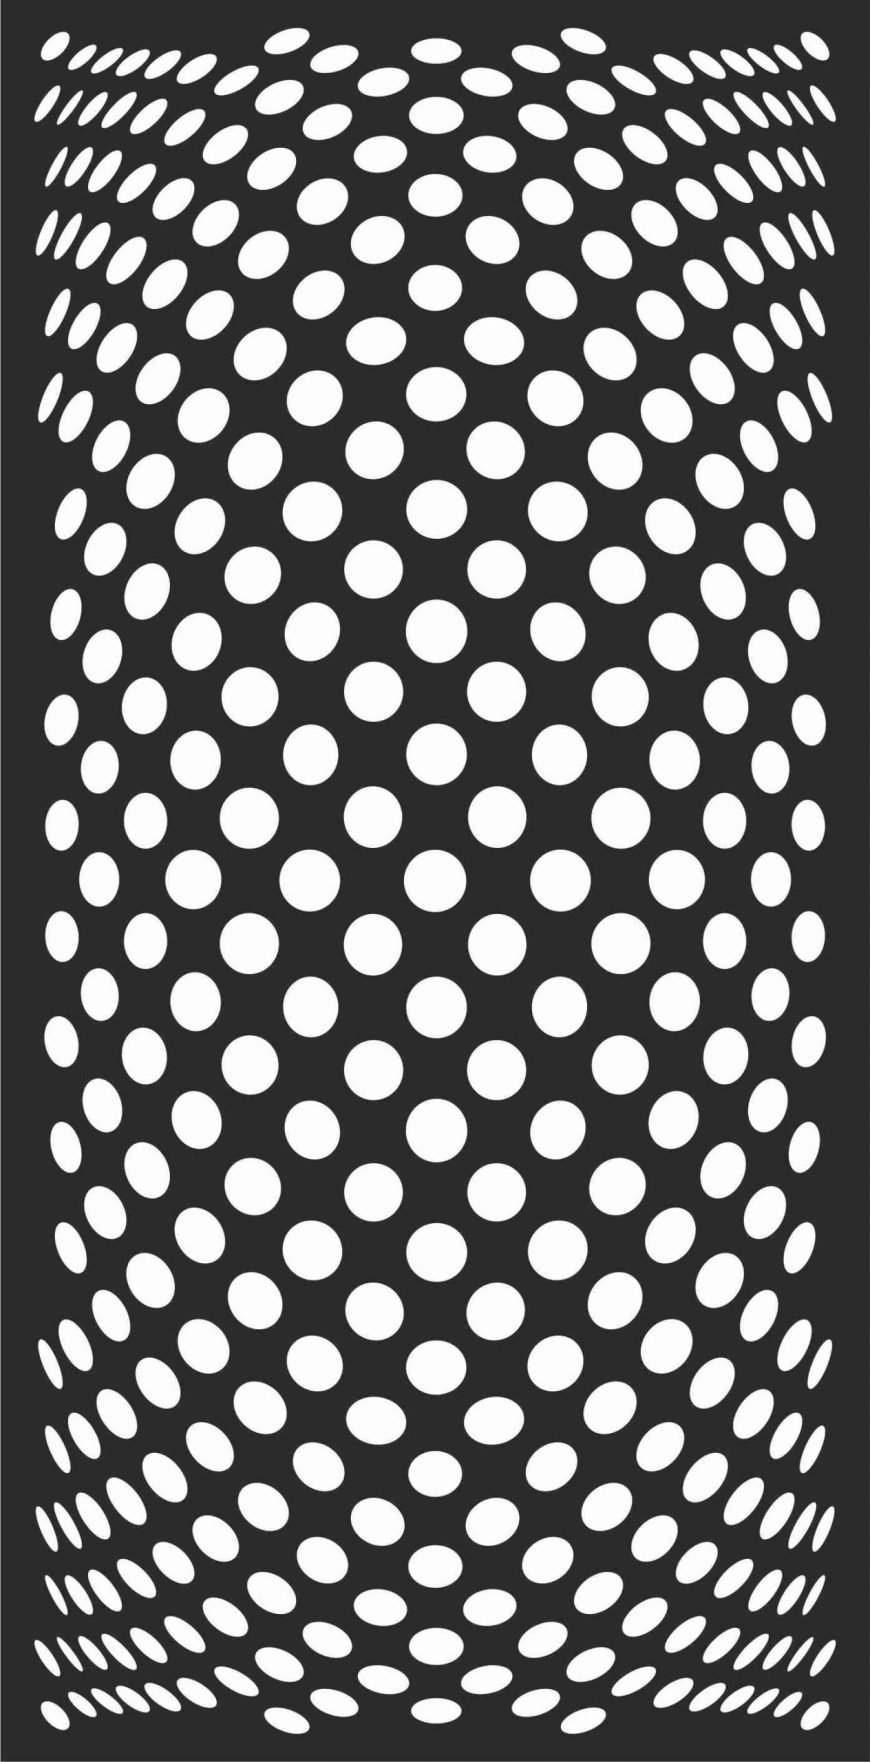 Decorative Screen Patterns For Laser Cutting 134 Free DXF File